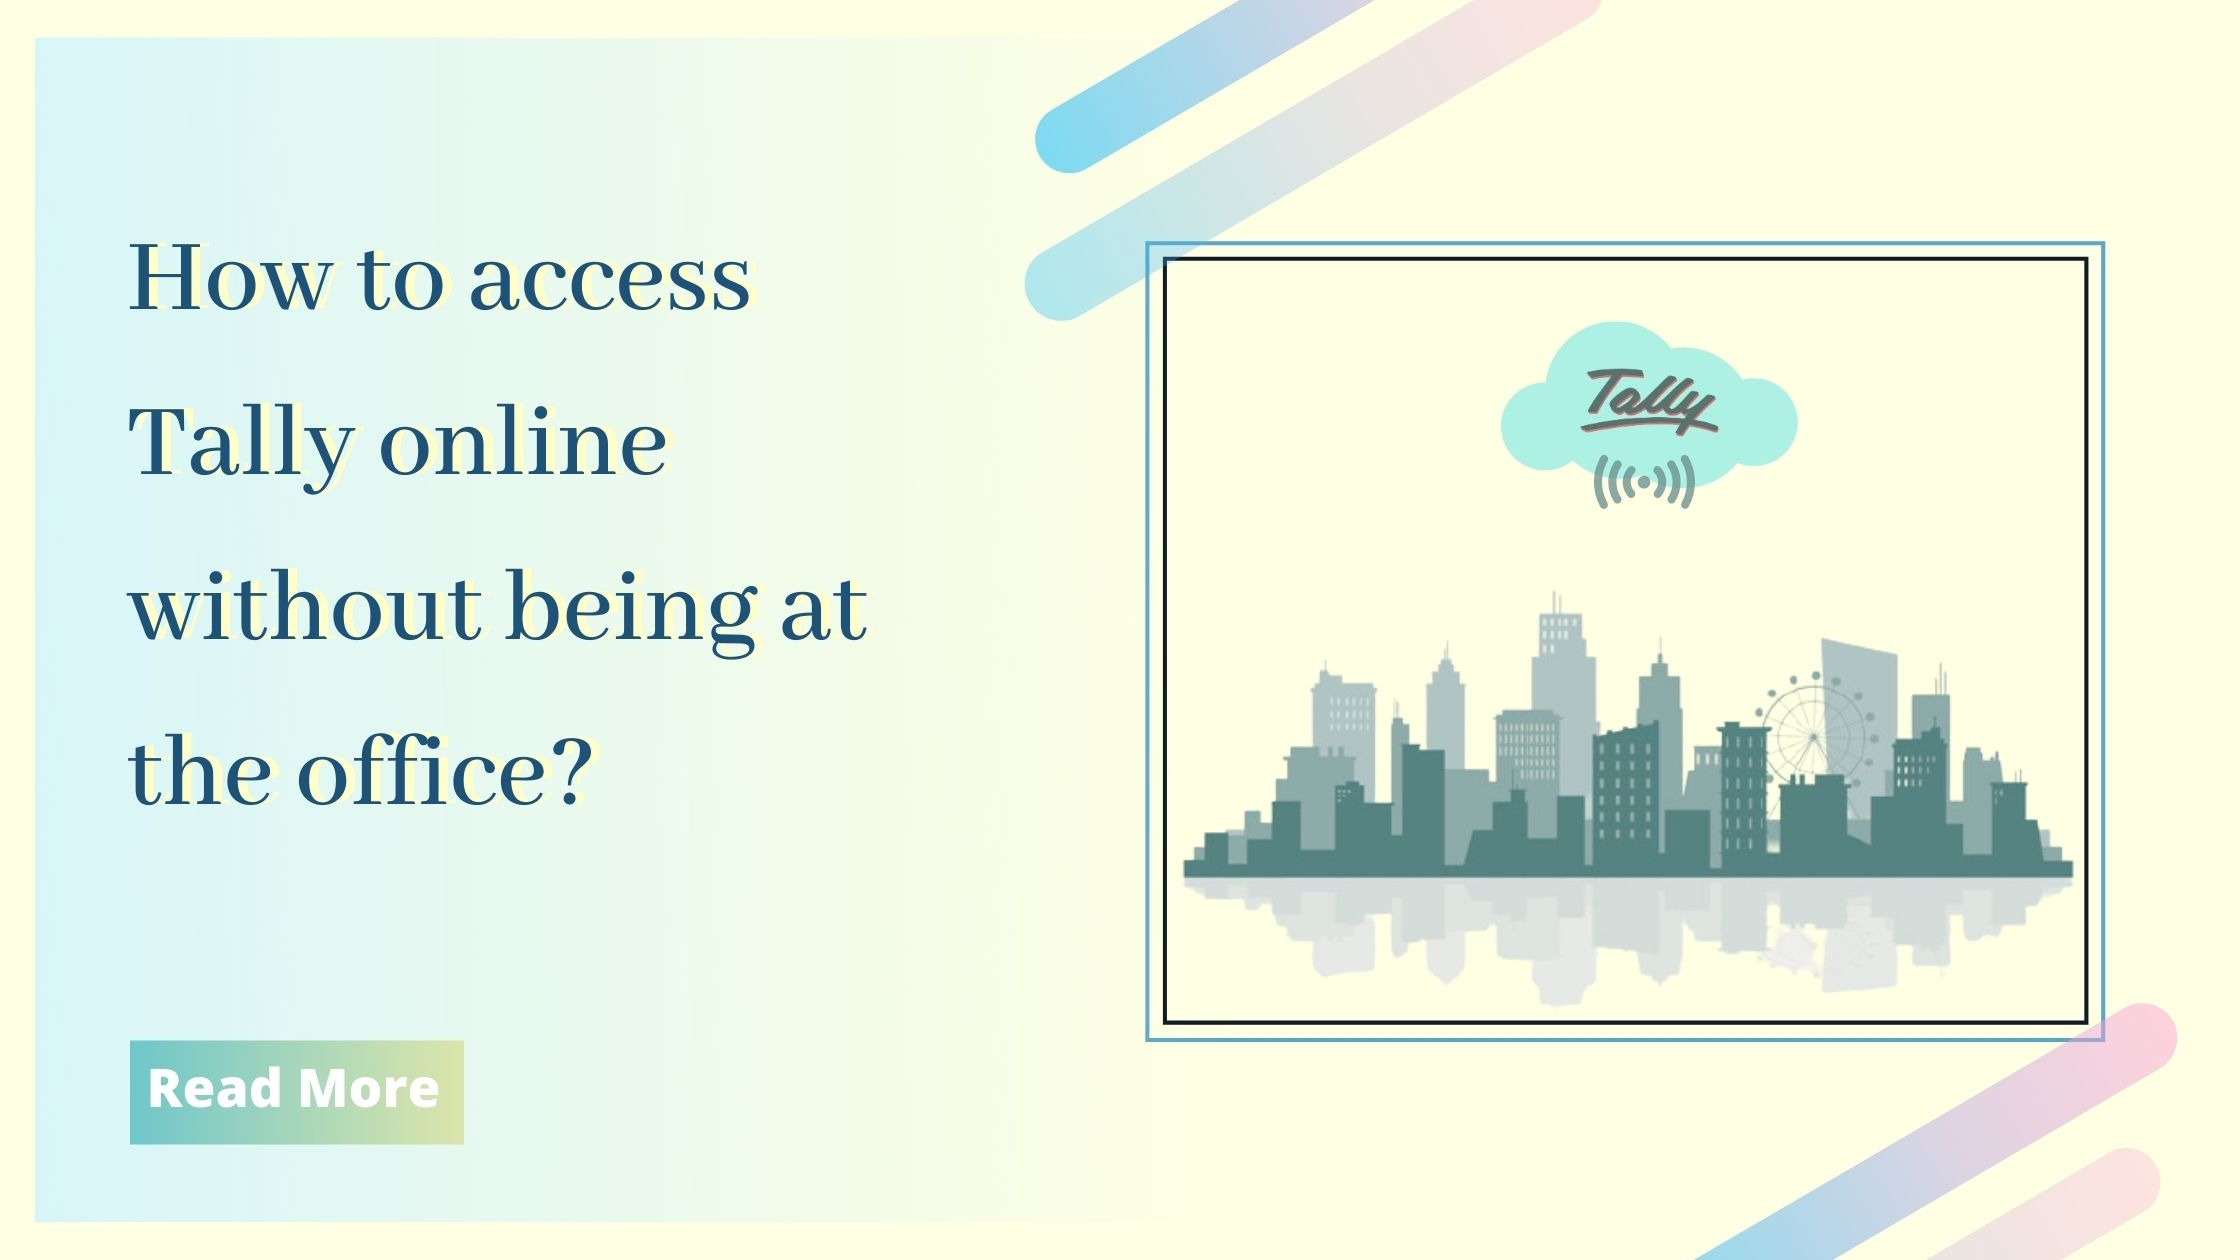 Tally online access anywhere